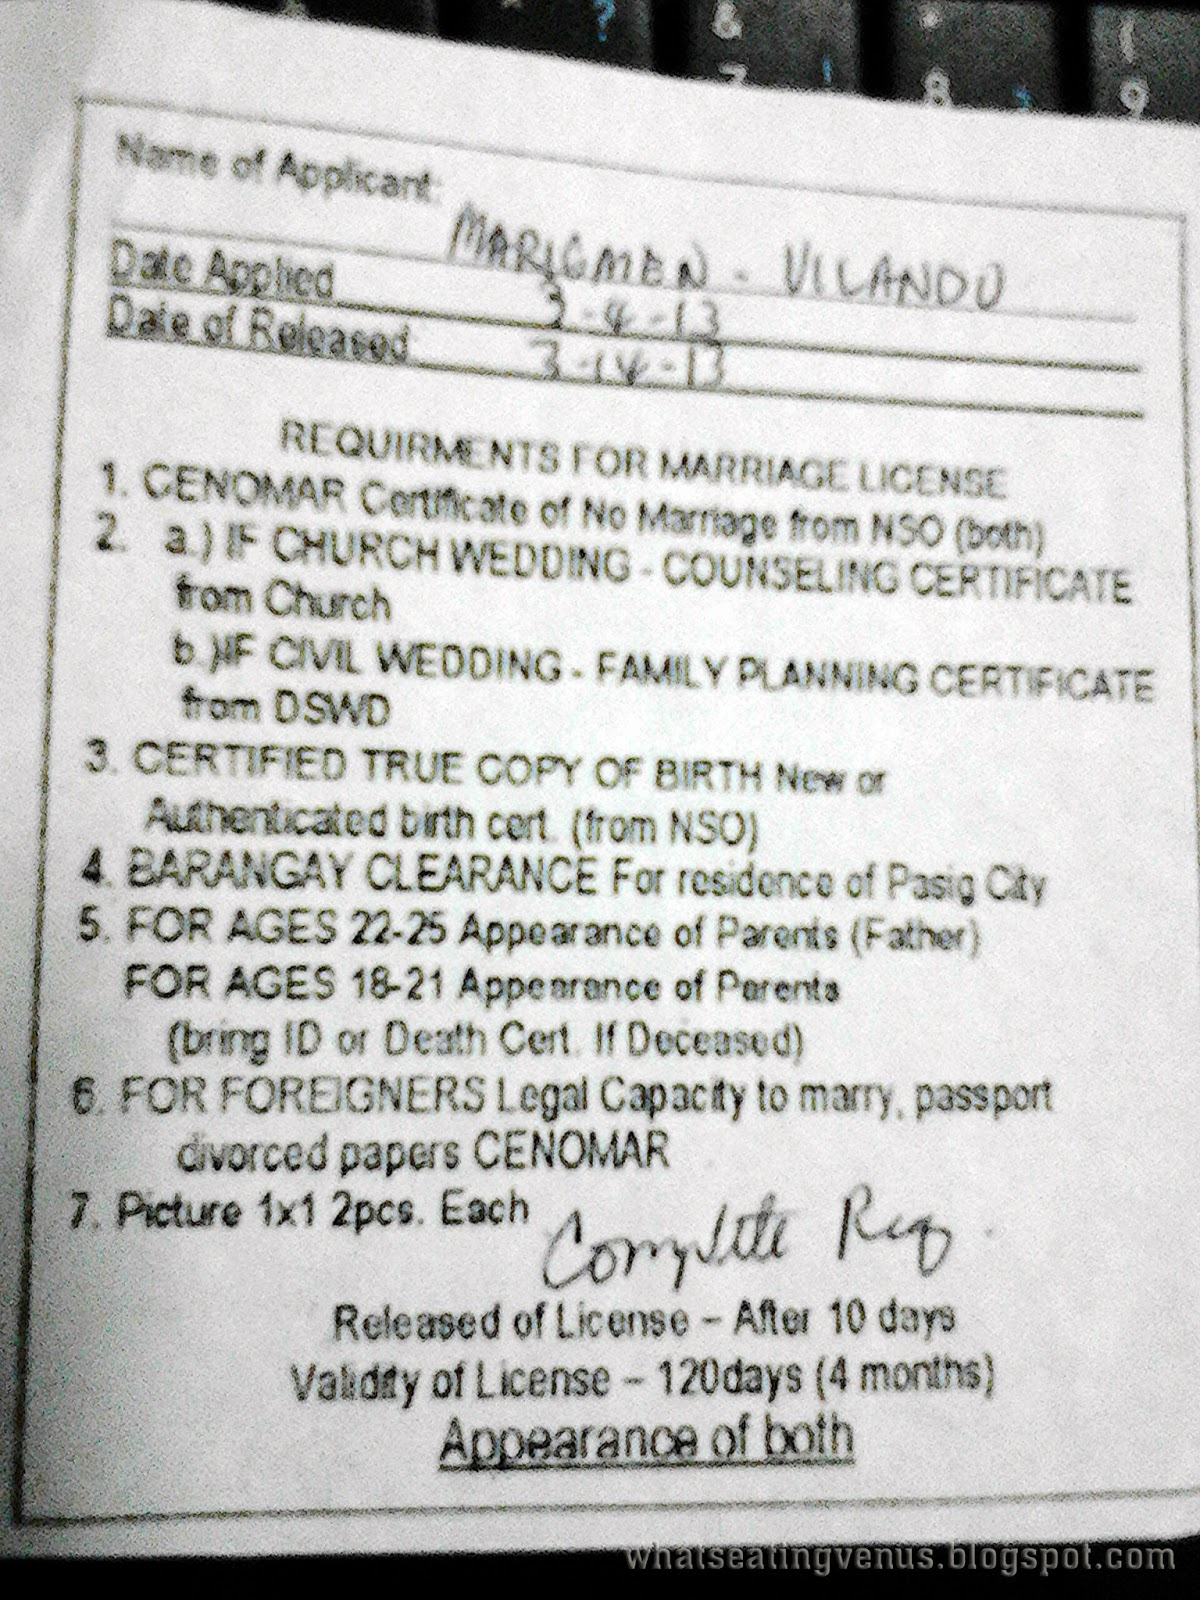 Marriage License Requirements Civil